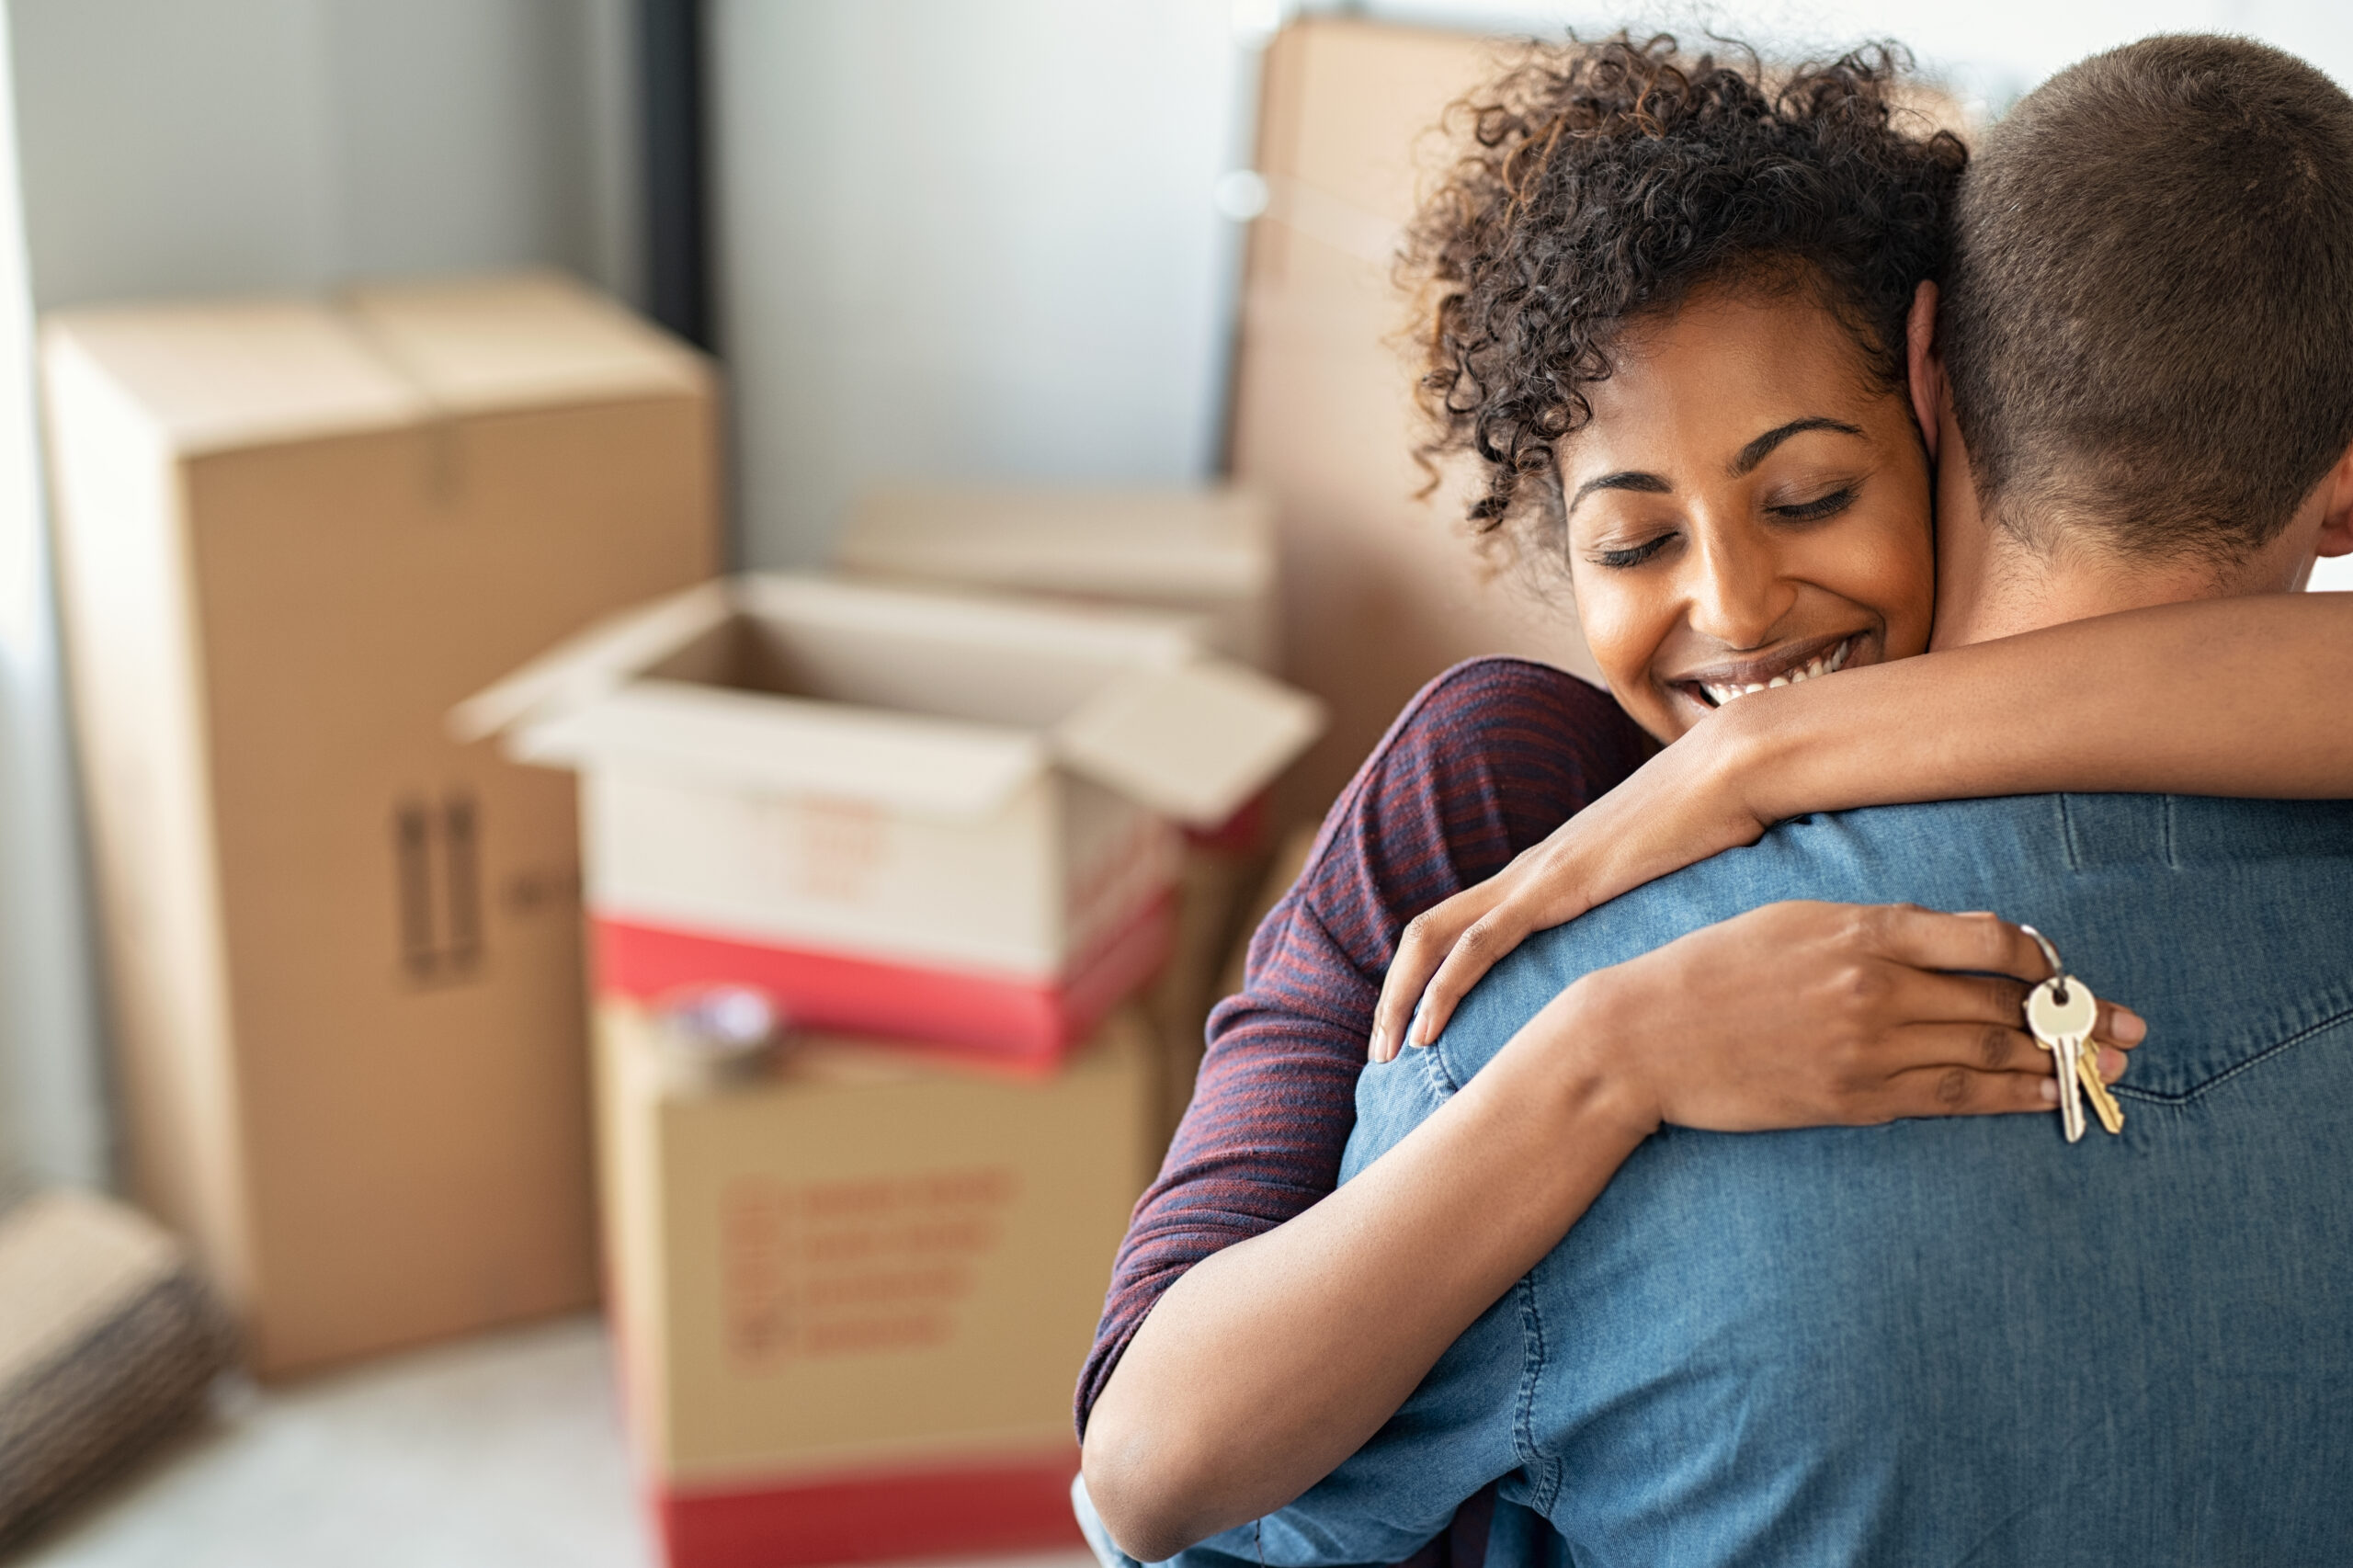 How to cope with the emotions of selling your home